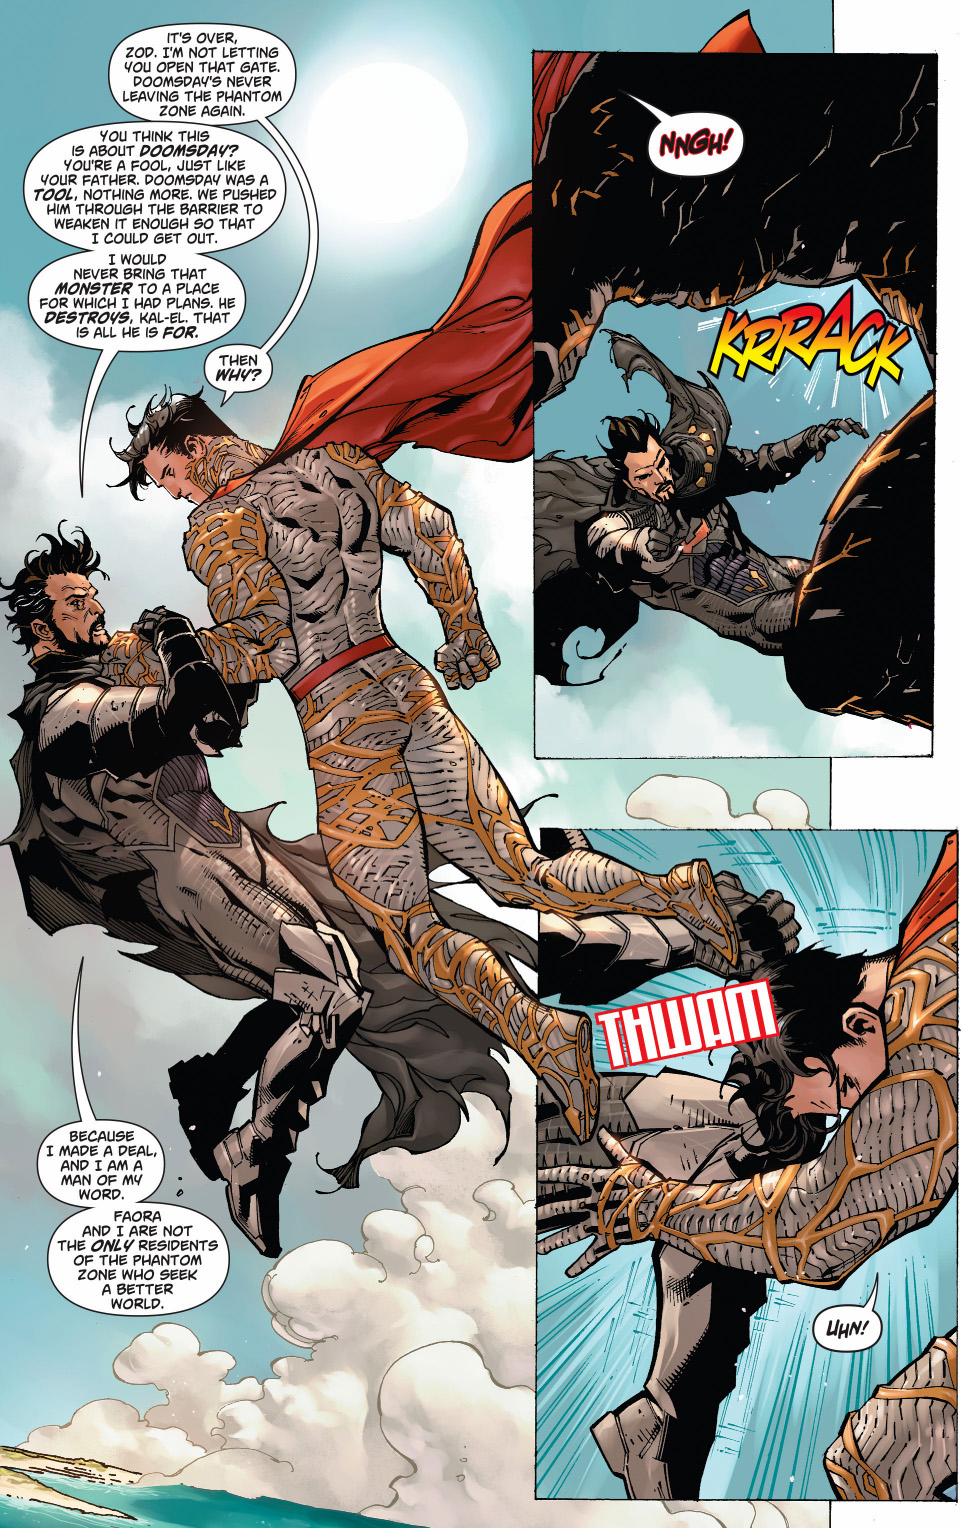 superman and wonder woman vs zod and faora